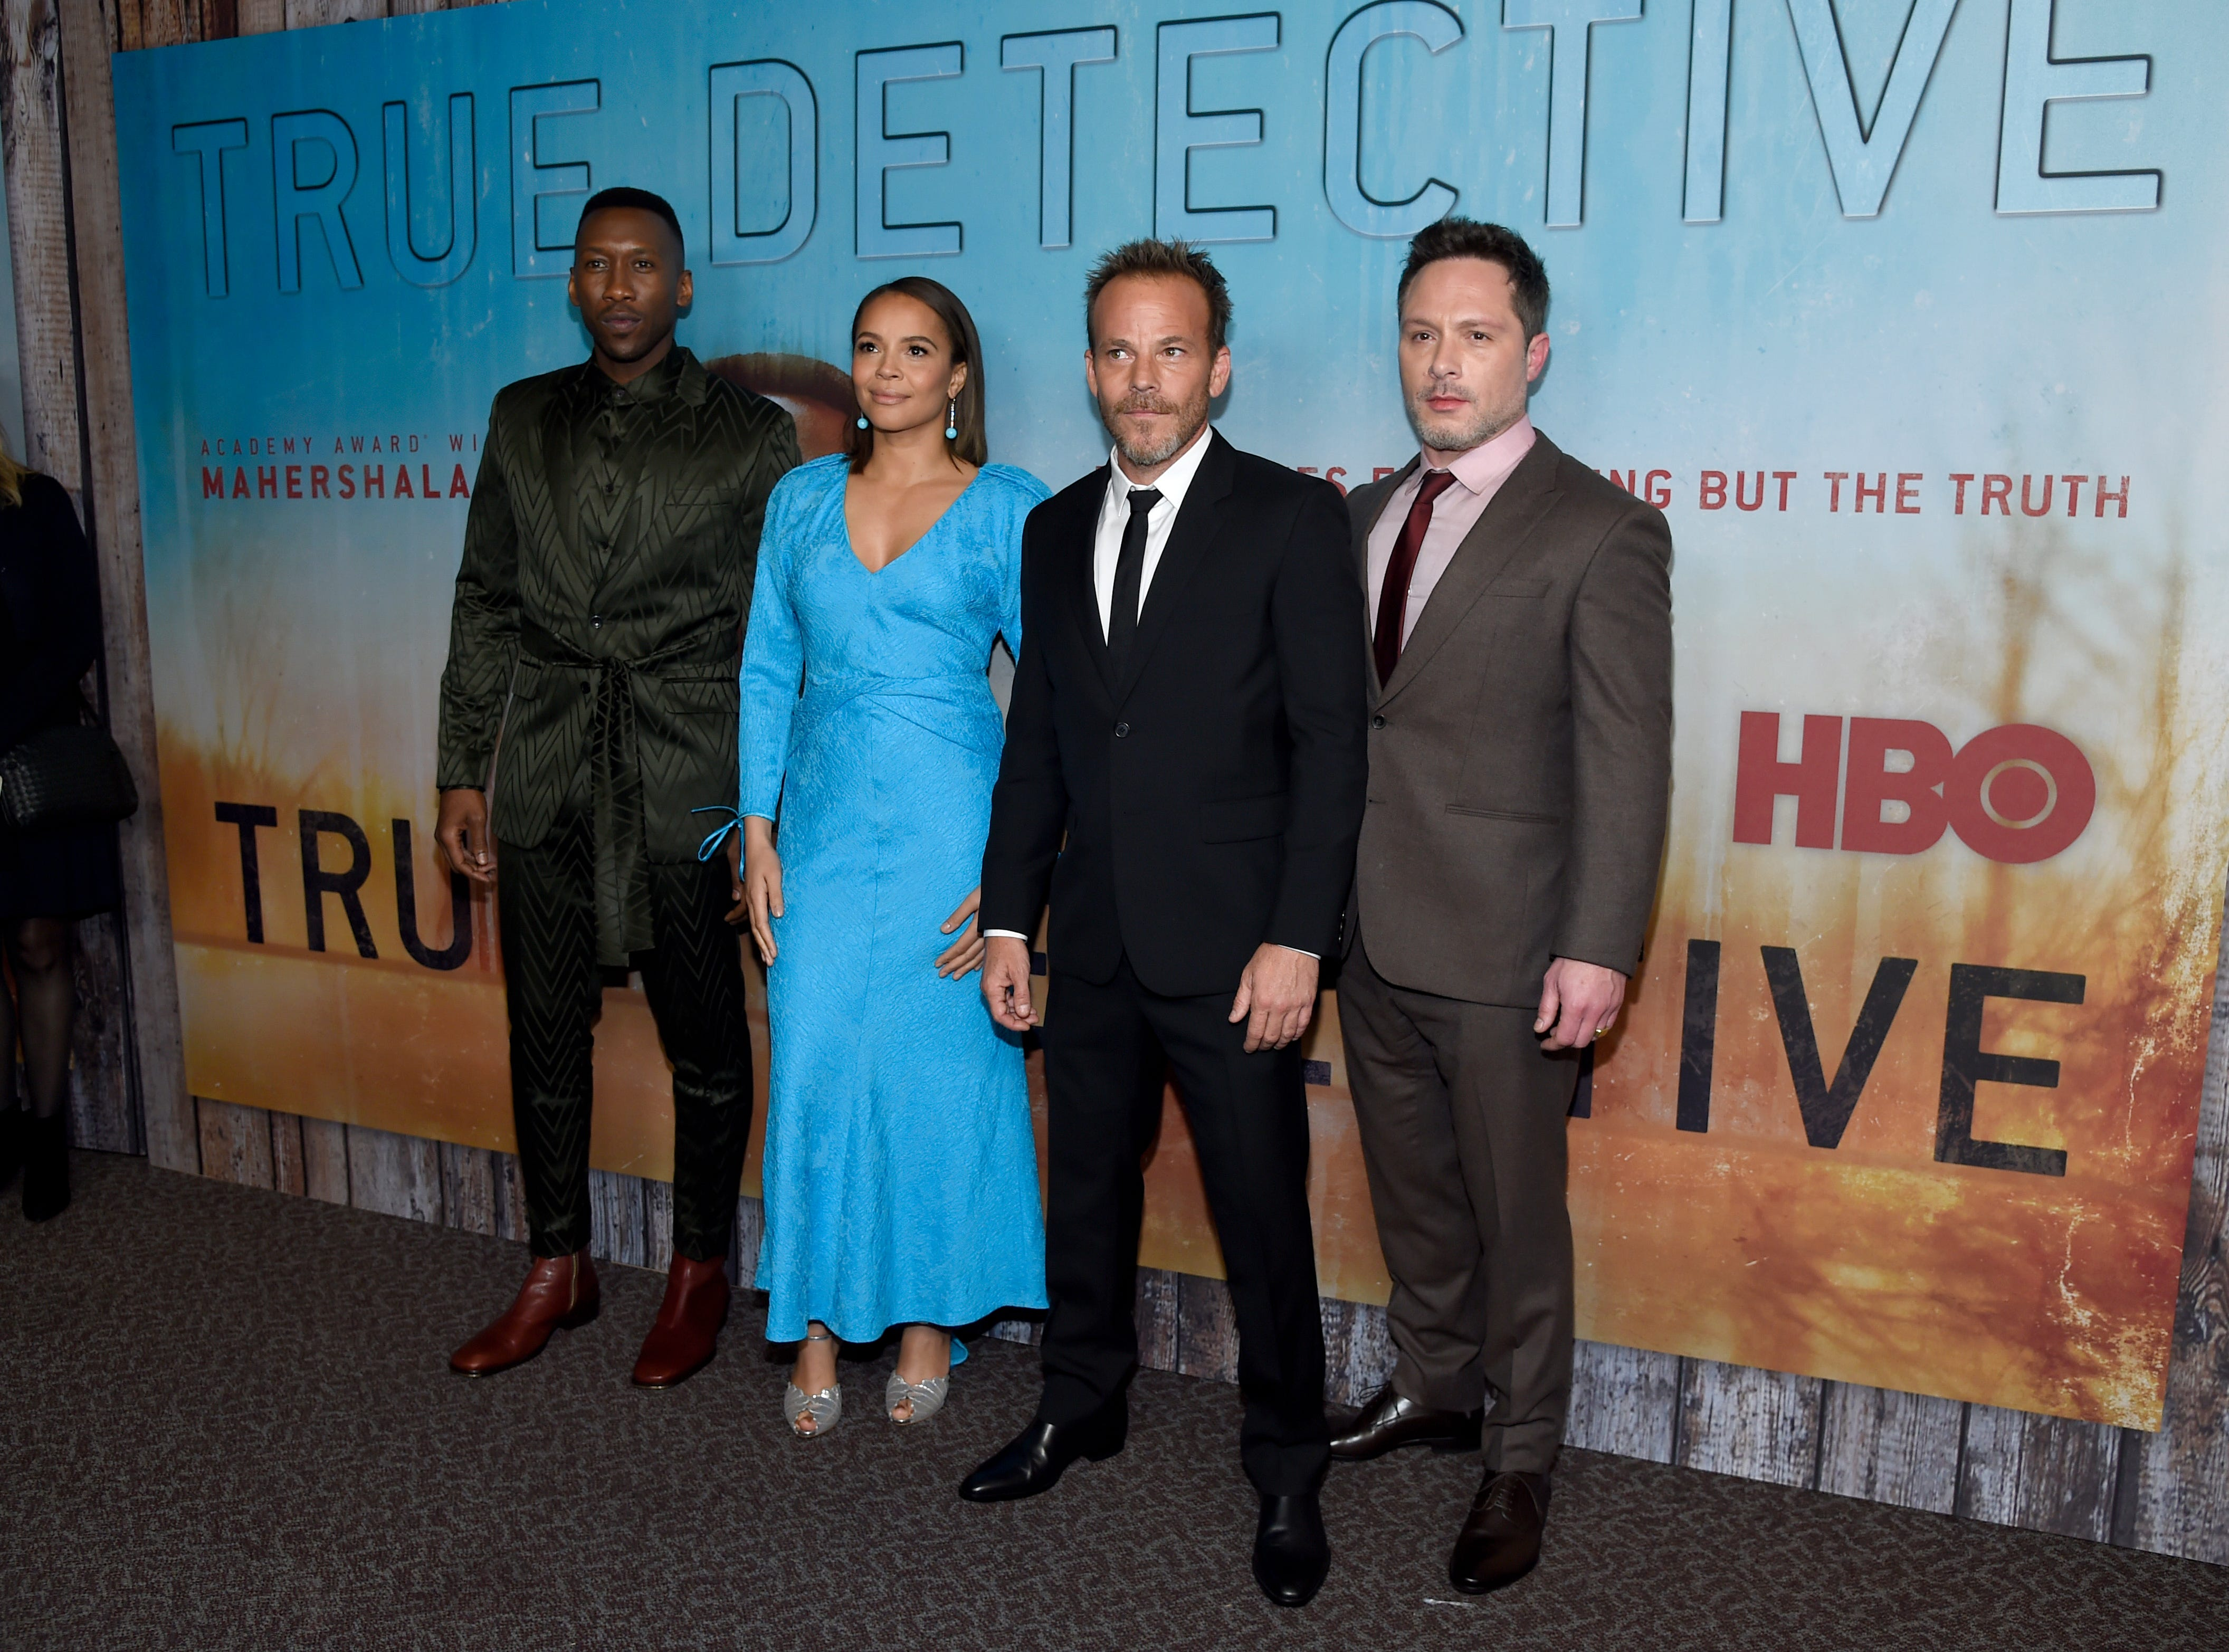 """Mahershala Ali, from left, Carmen Ejogo, Stephen Dorff and creator/executive producer Nic Pizzolatto arrive at the Los Angeles premiere of """"True Detective"""" season 3 at the Directors Guild of America on Thursday, Jan. 10, 2019."""